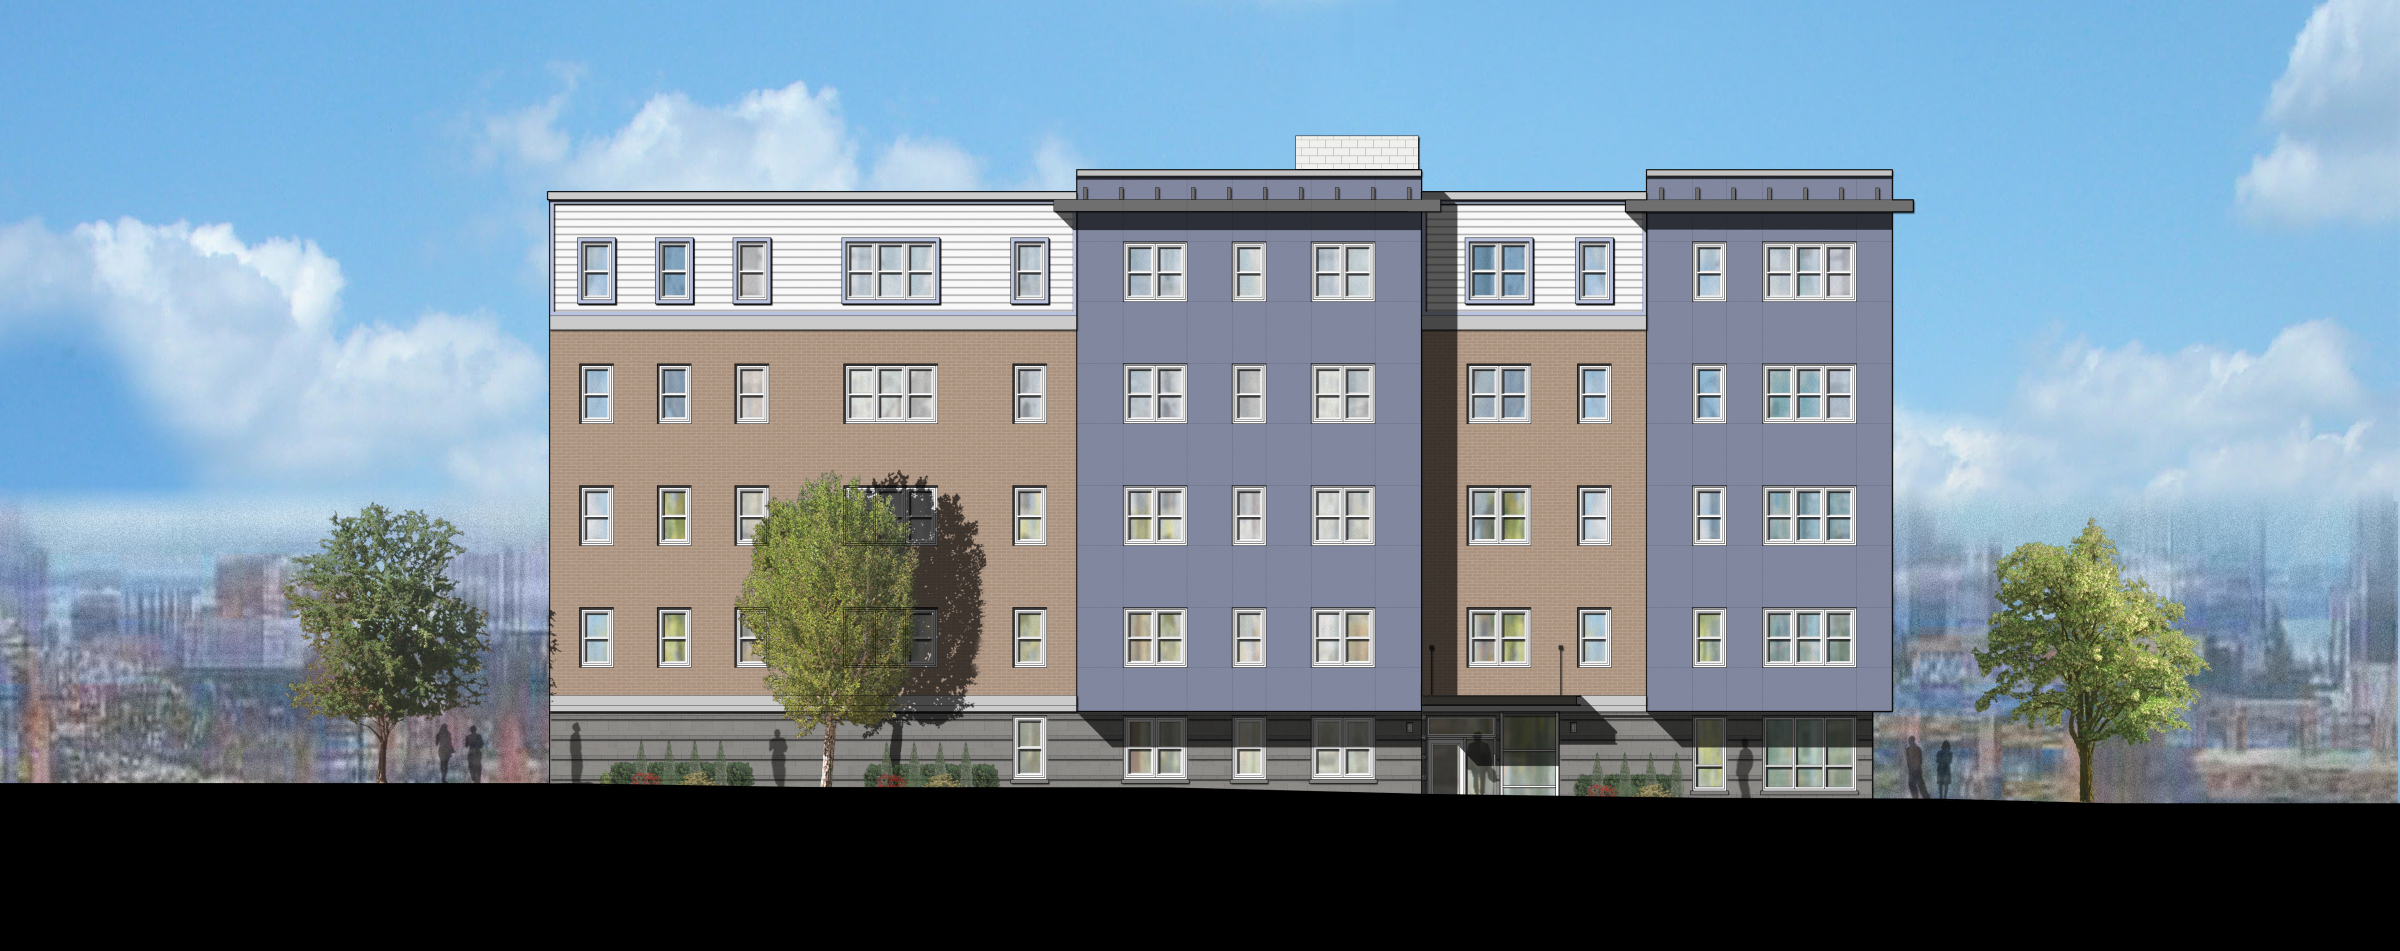 DCHFA Invests in Ward 5 with the Funding of Langdon Apartments